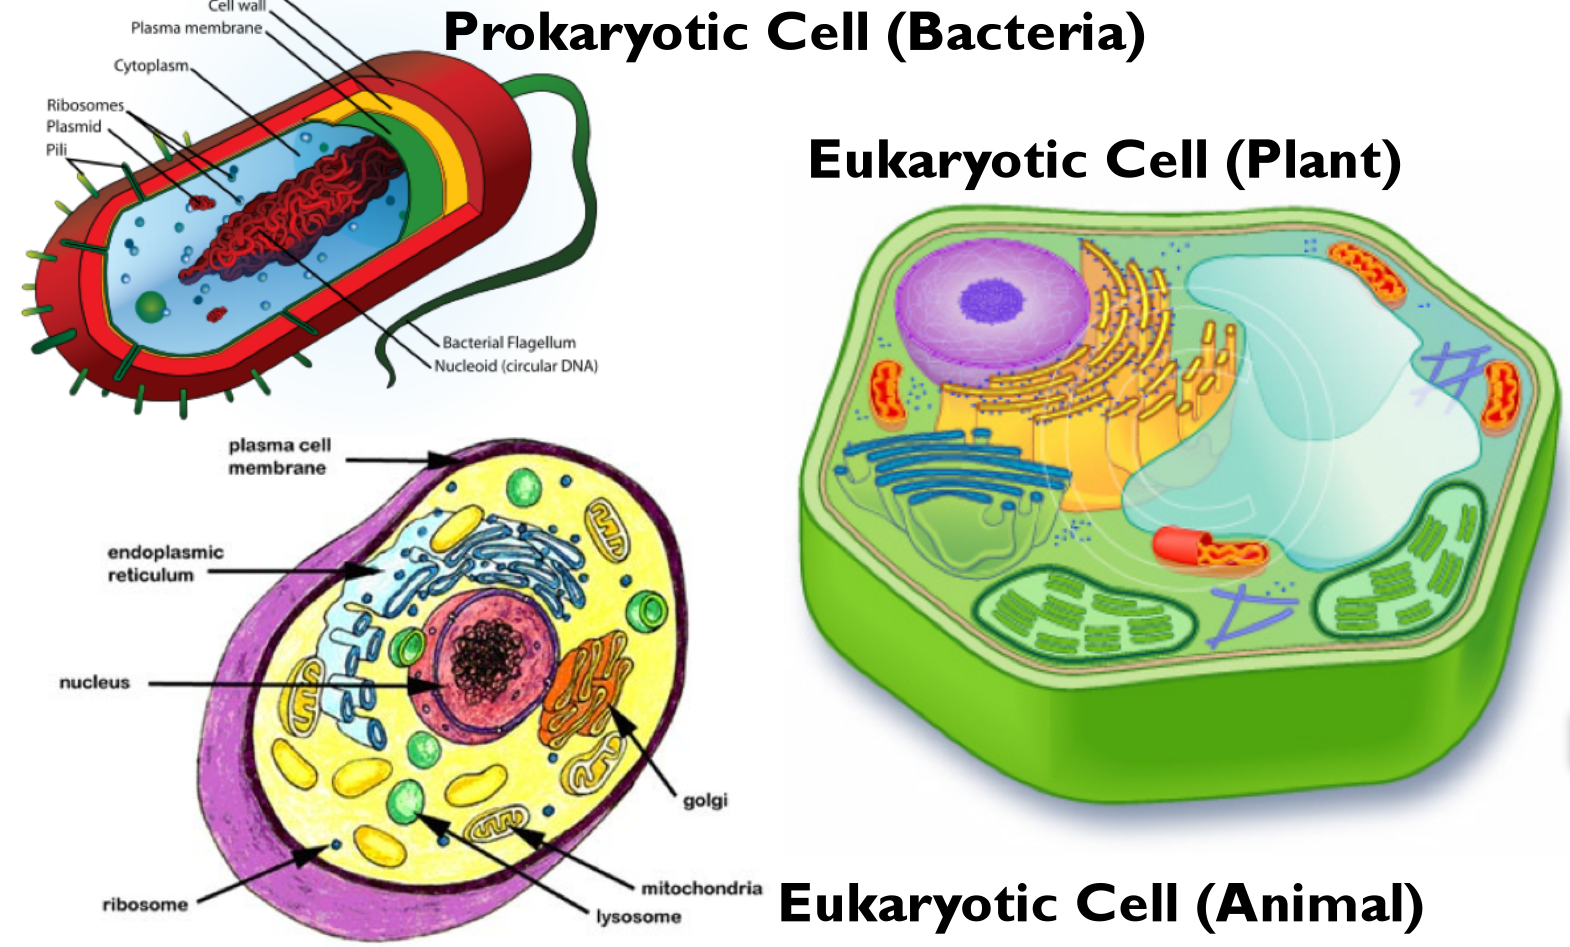 prokaryotic cells Learn about prokaryotic cells, single-celled organisms that are the earliest and most primitive forms of life on earth and include bacteria and archaeans.